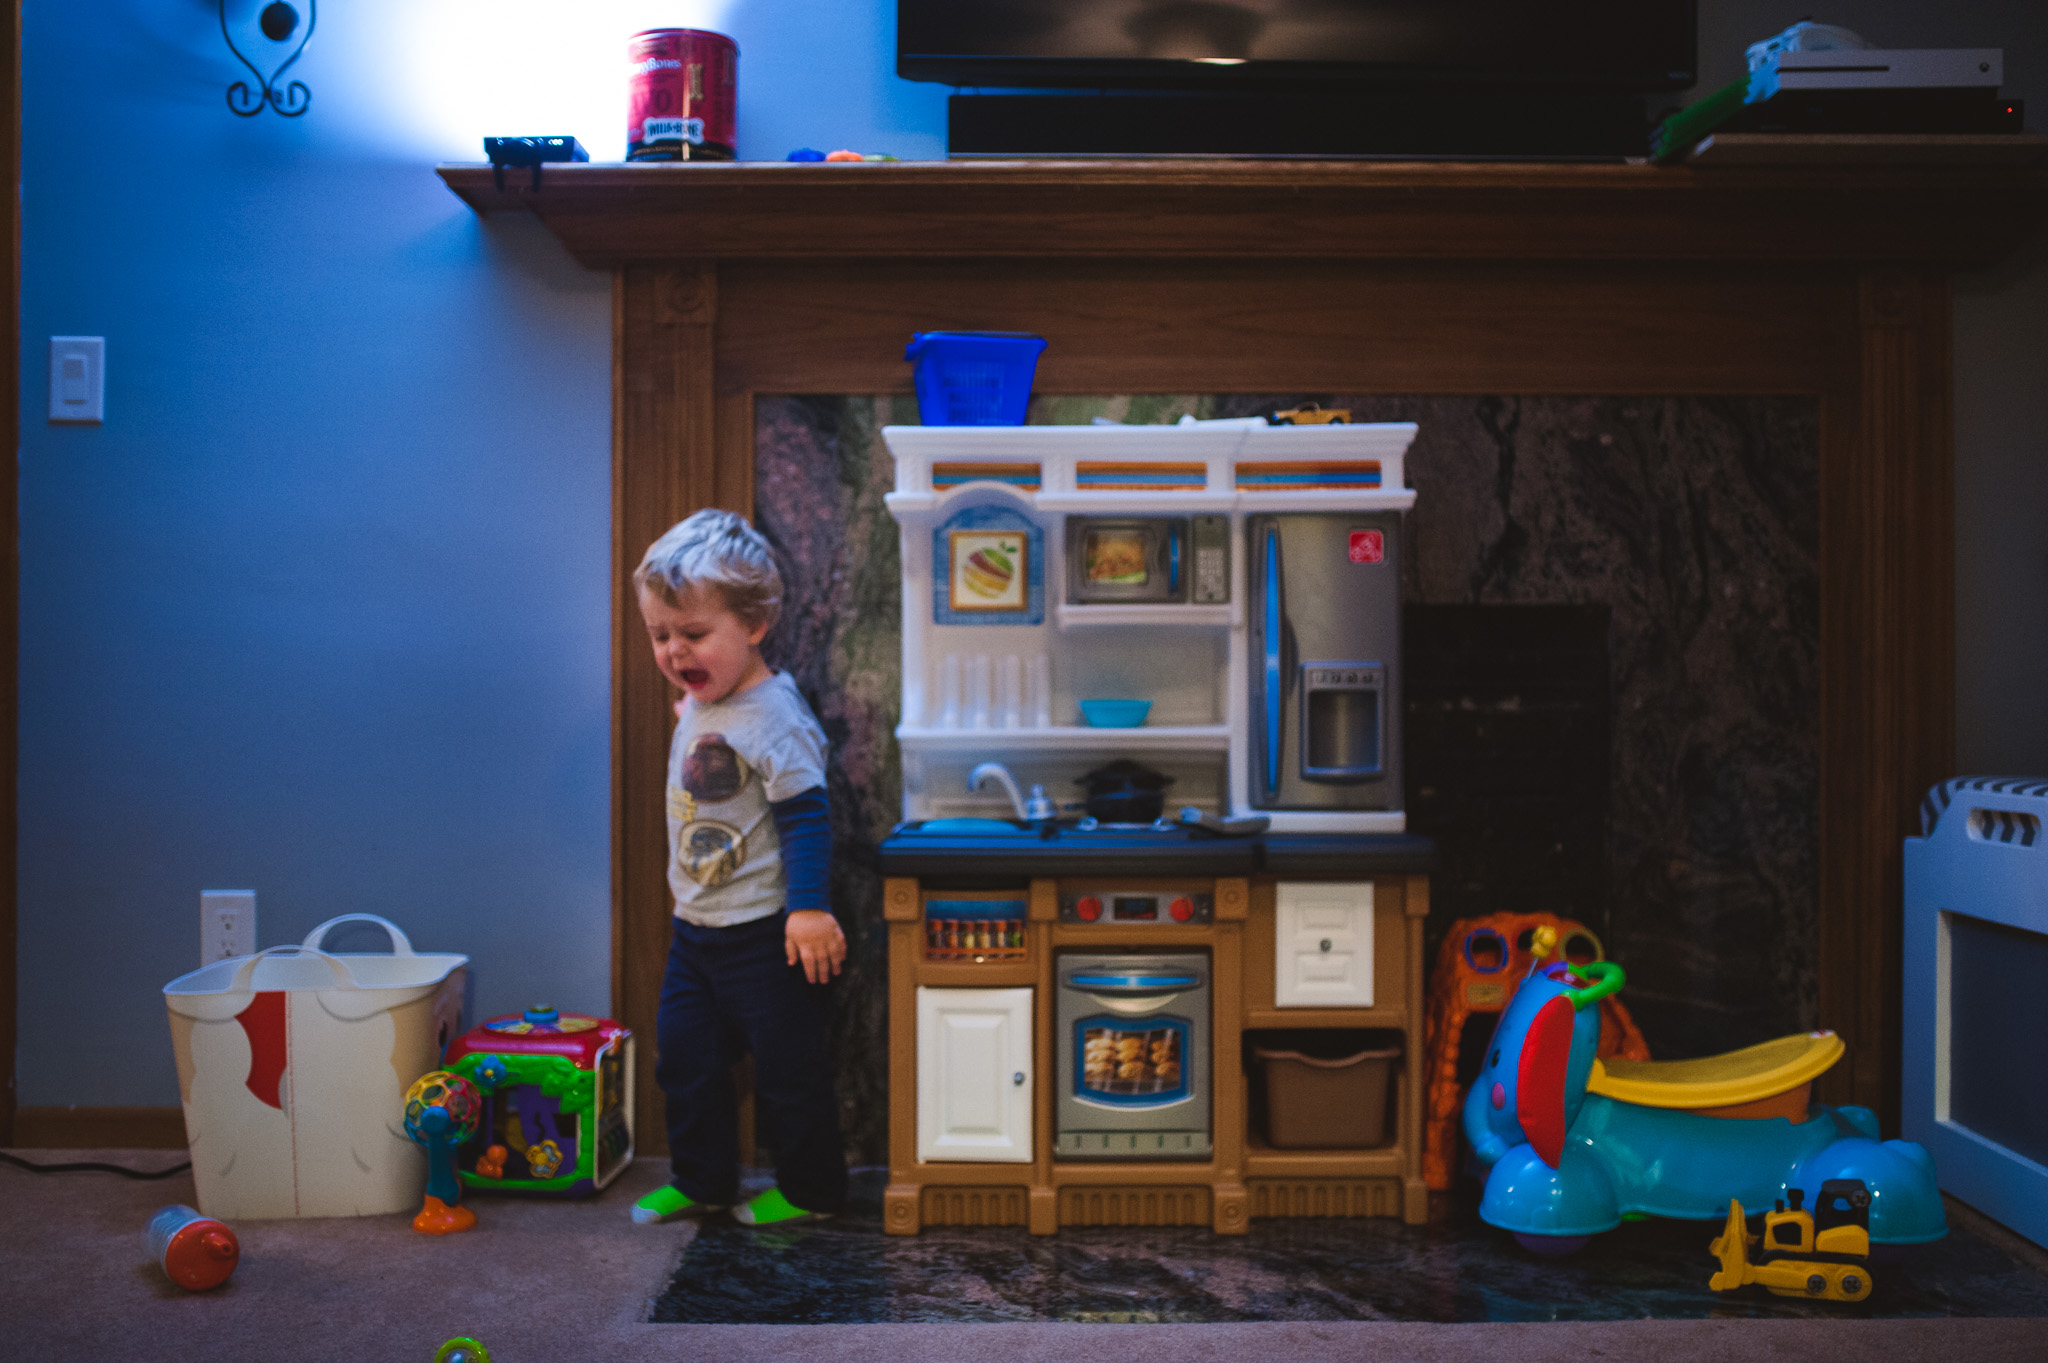 09 Jan 2017   There may not be crying in baseball, but there is definitely crying when it comes to toddlers and 'trucks' - especially when they are out of reach.